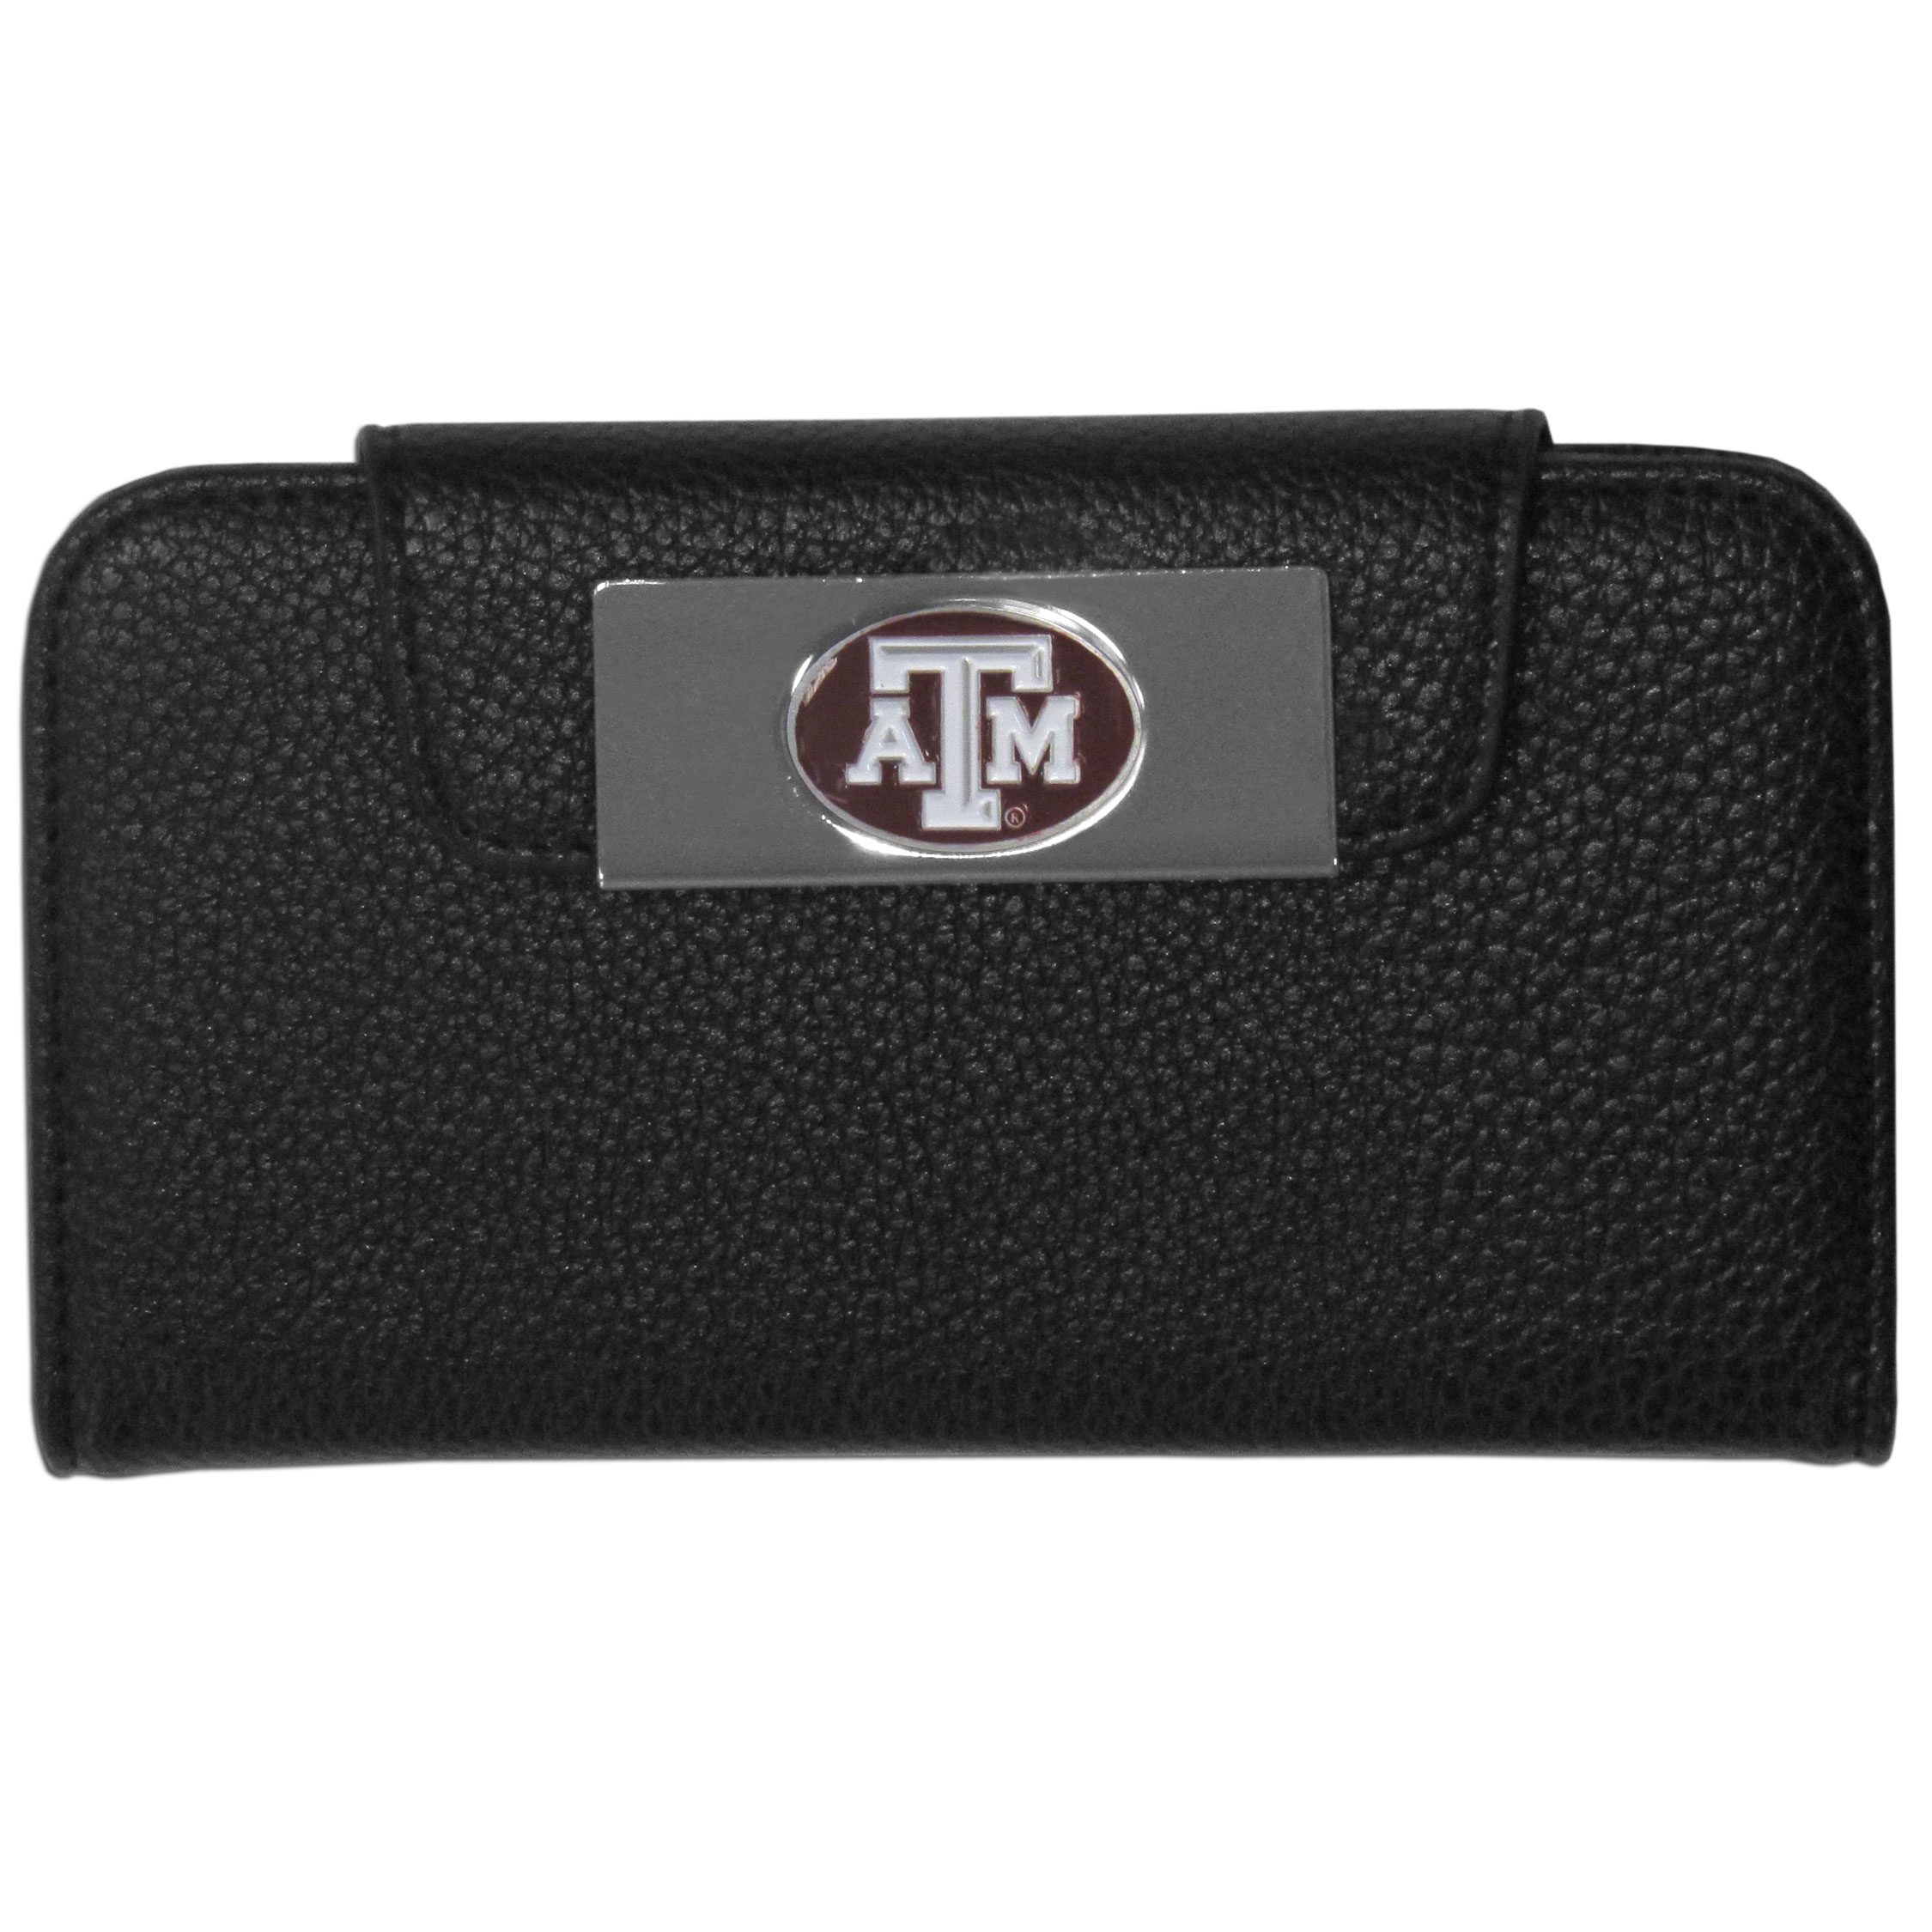 Texas A and M Aggies iPhone 5/5S Wallet Case - This new & wildly popular case is ideal for those who like to travel light! The stylish case has an inner hard shell that securely holds your phone while allowing complete access to the phone's functionality. The flip cover has slots for credit cards, business cards and identification. The magnetic flip cover has a metal Texas A & M Aggies emblem on a high polish chrome backing. Fits the iPhone 5/5S